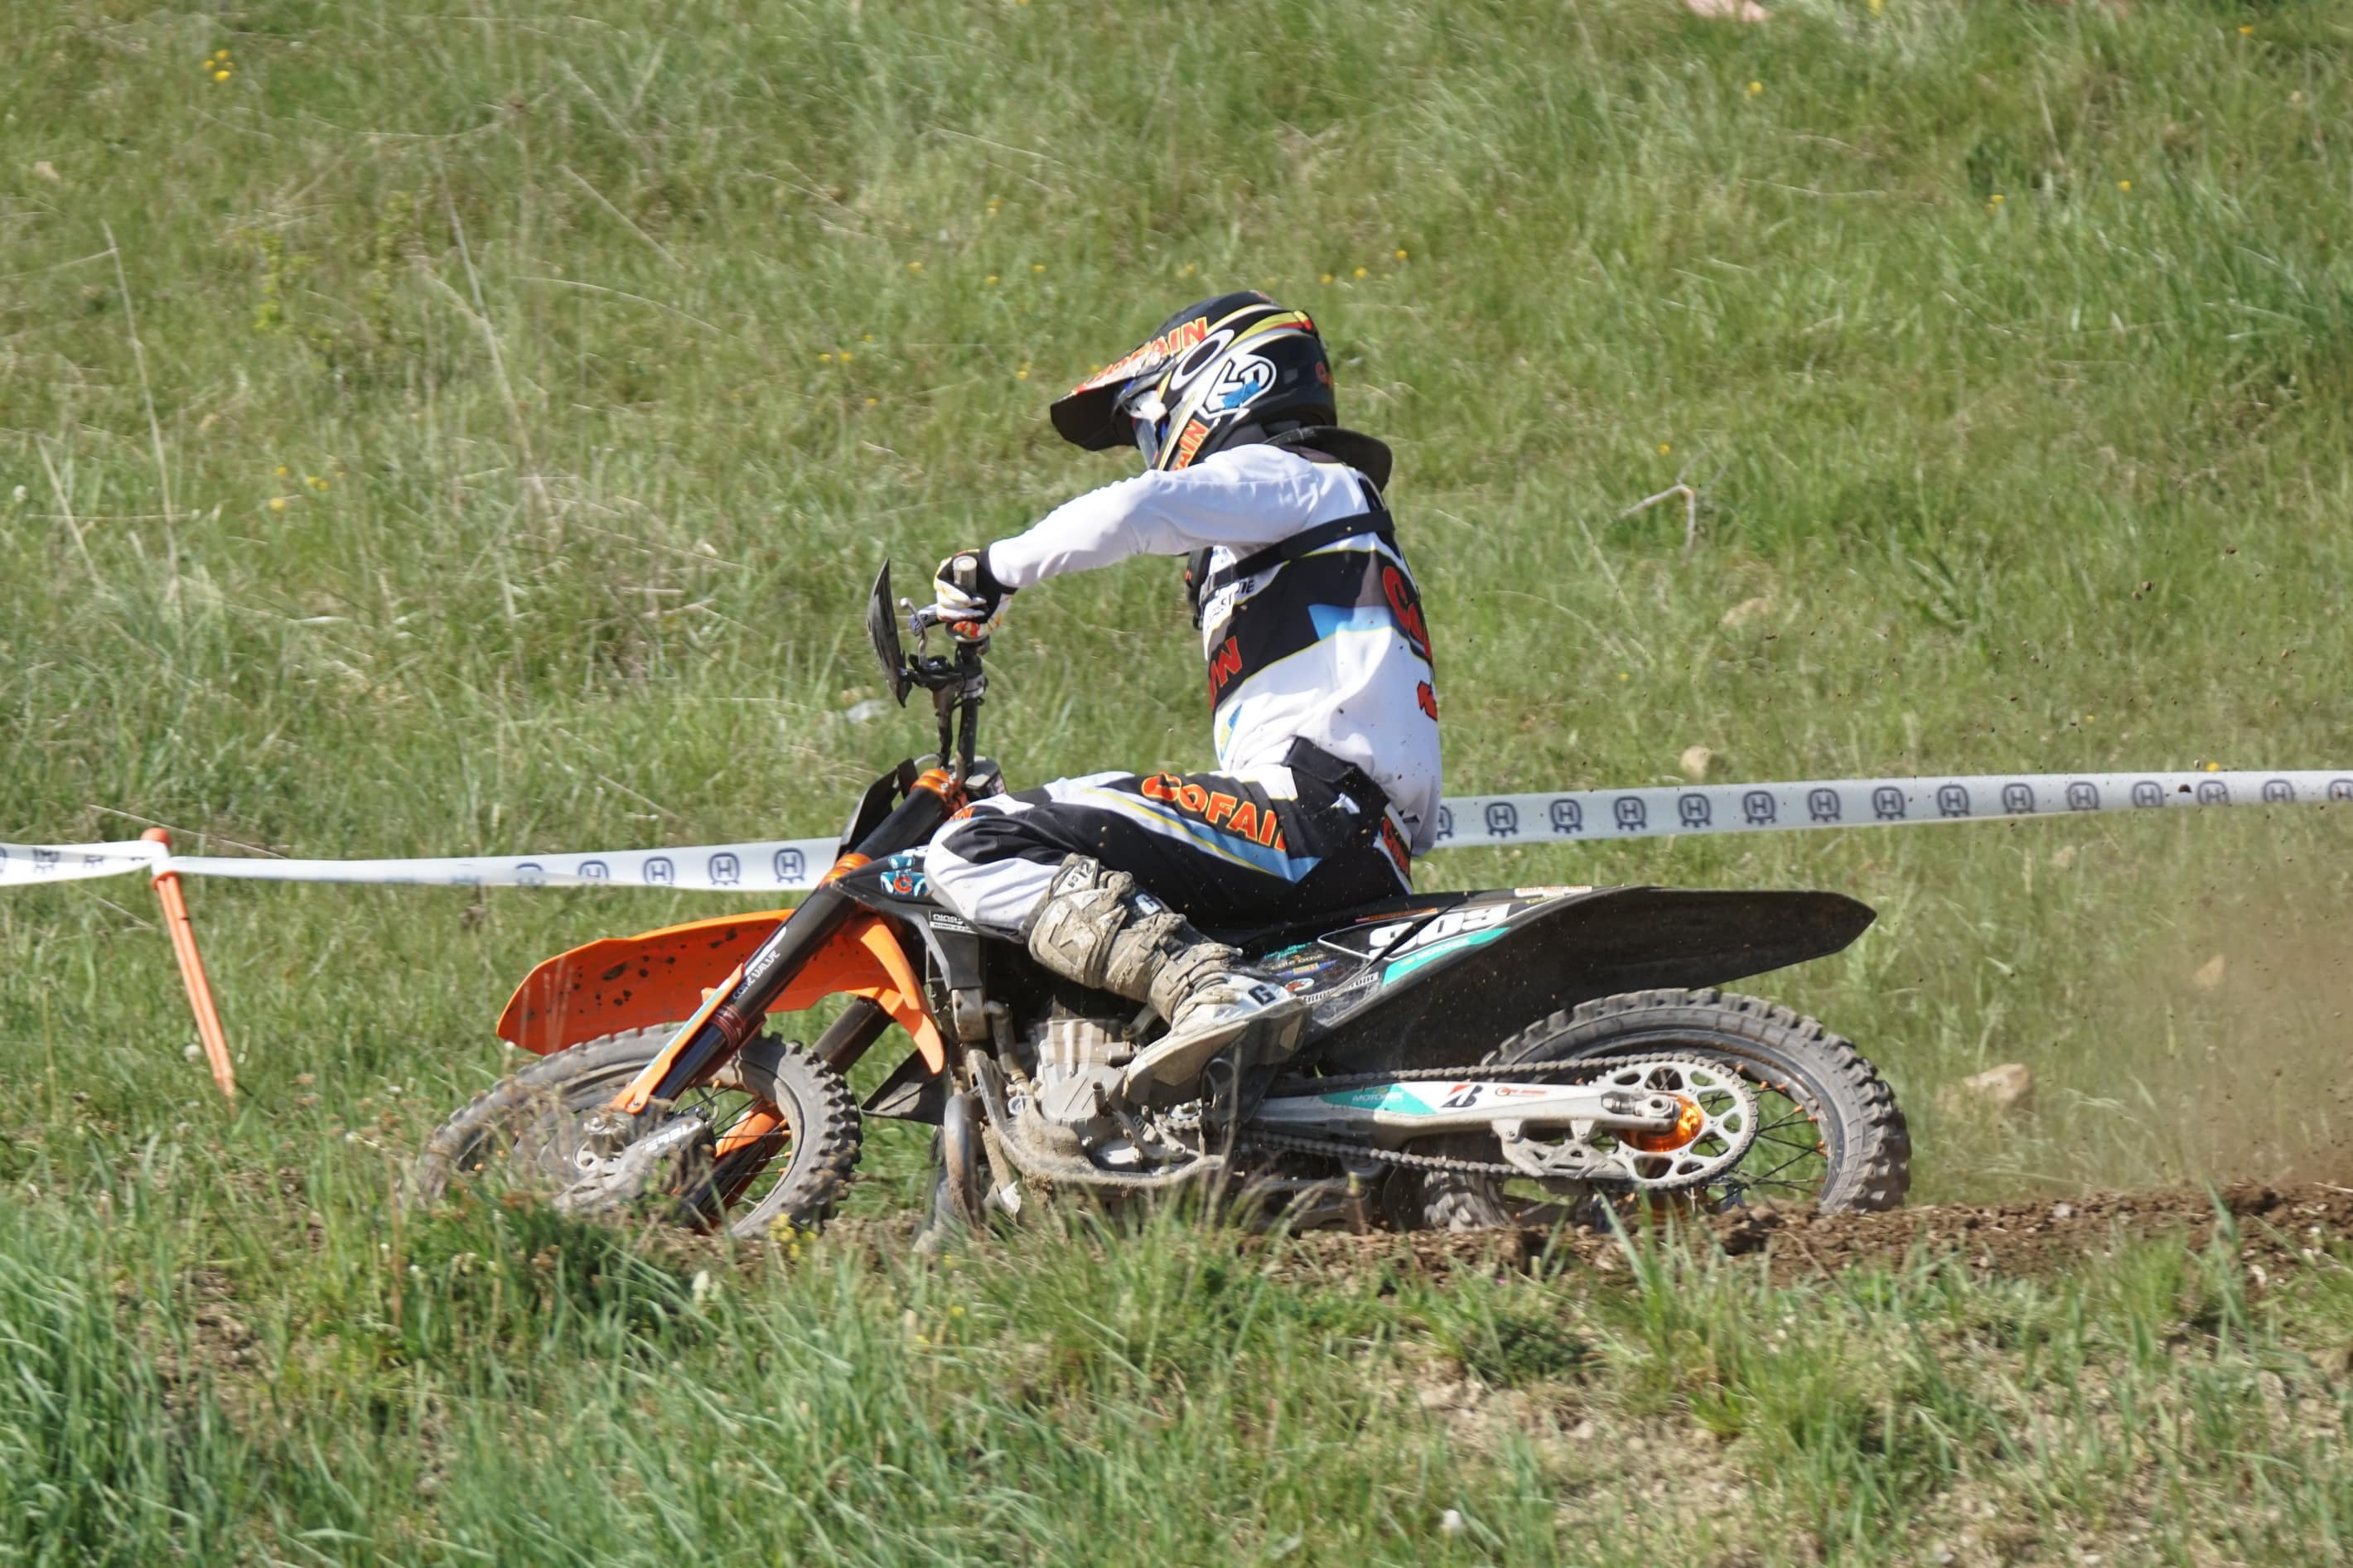 DSC 913_Moto Cross Sittendorf Teil1 am 29.04.2018